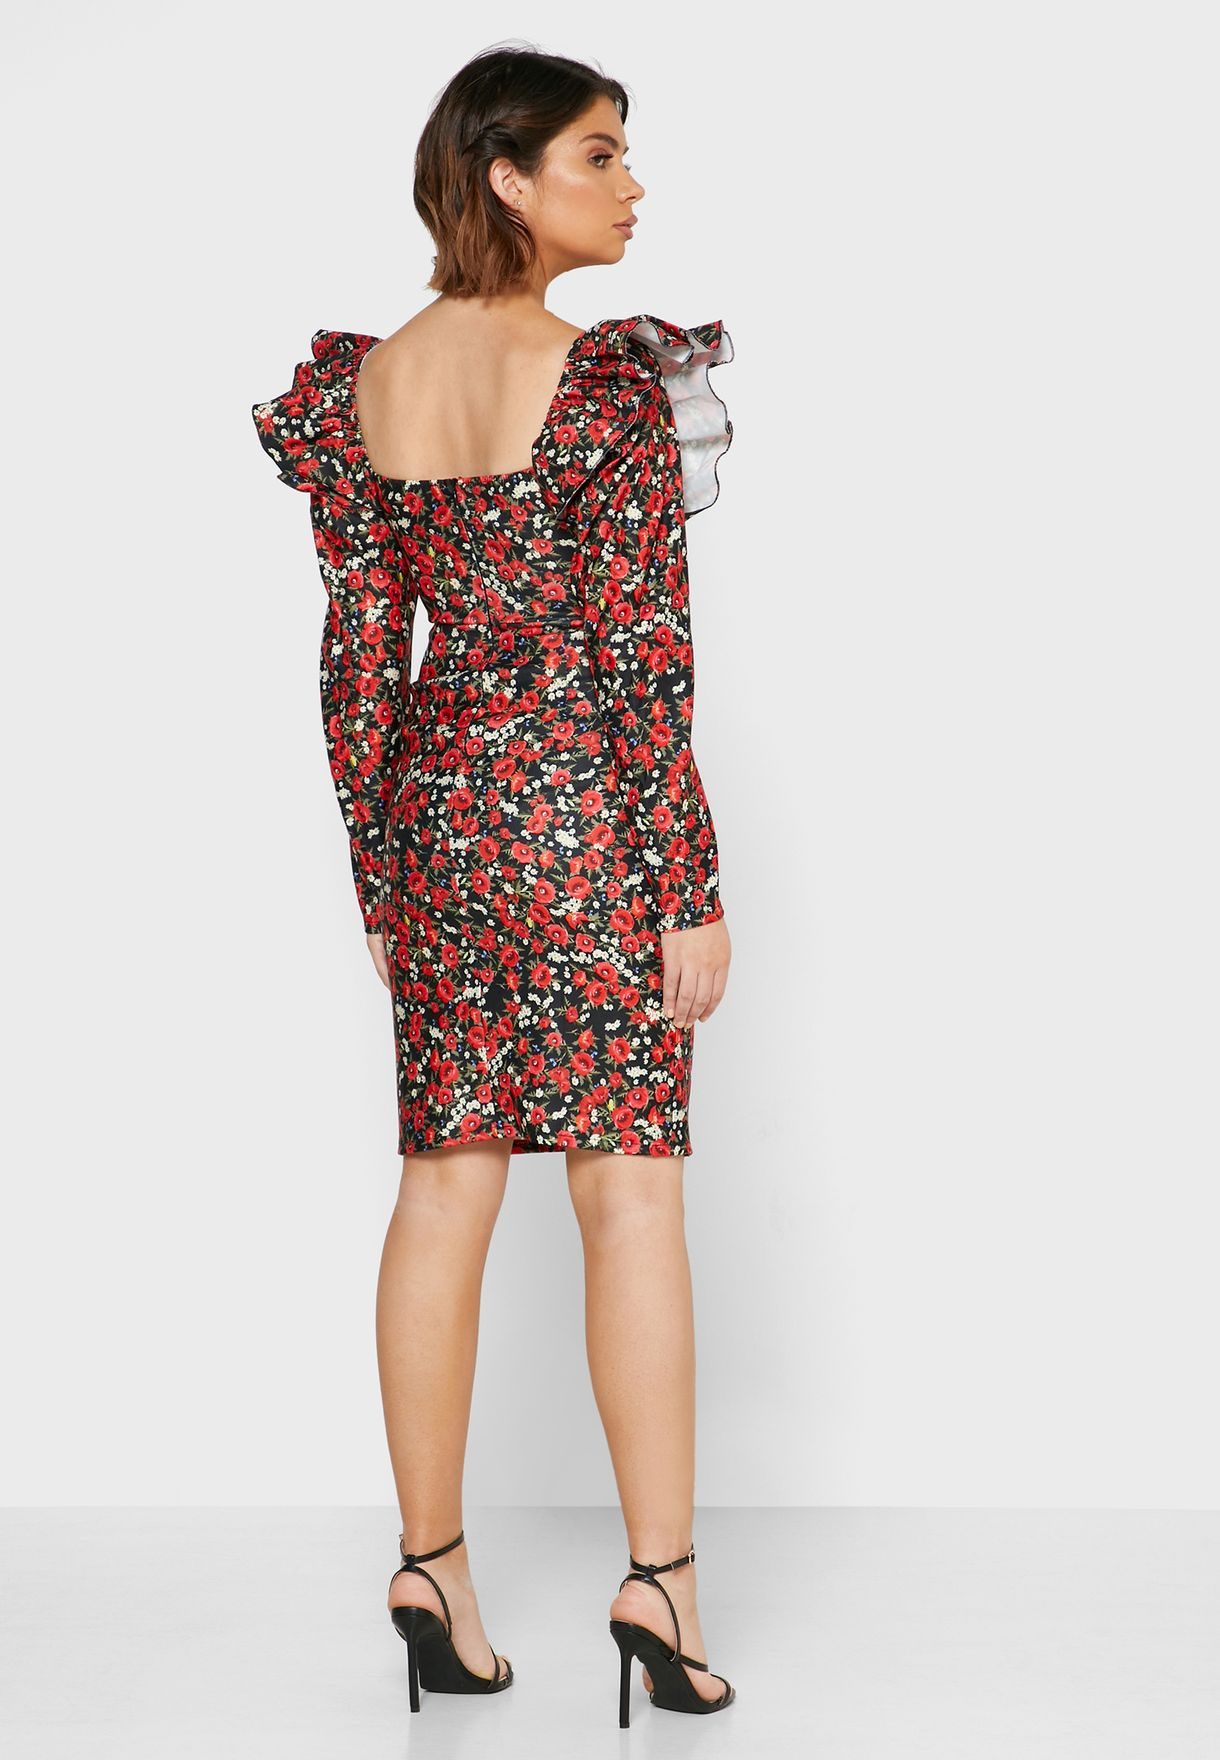 Ginger Floral Print Ruched Sleeve Mini Dress - Women Clothing HMl7X